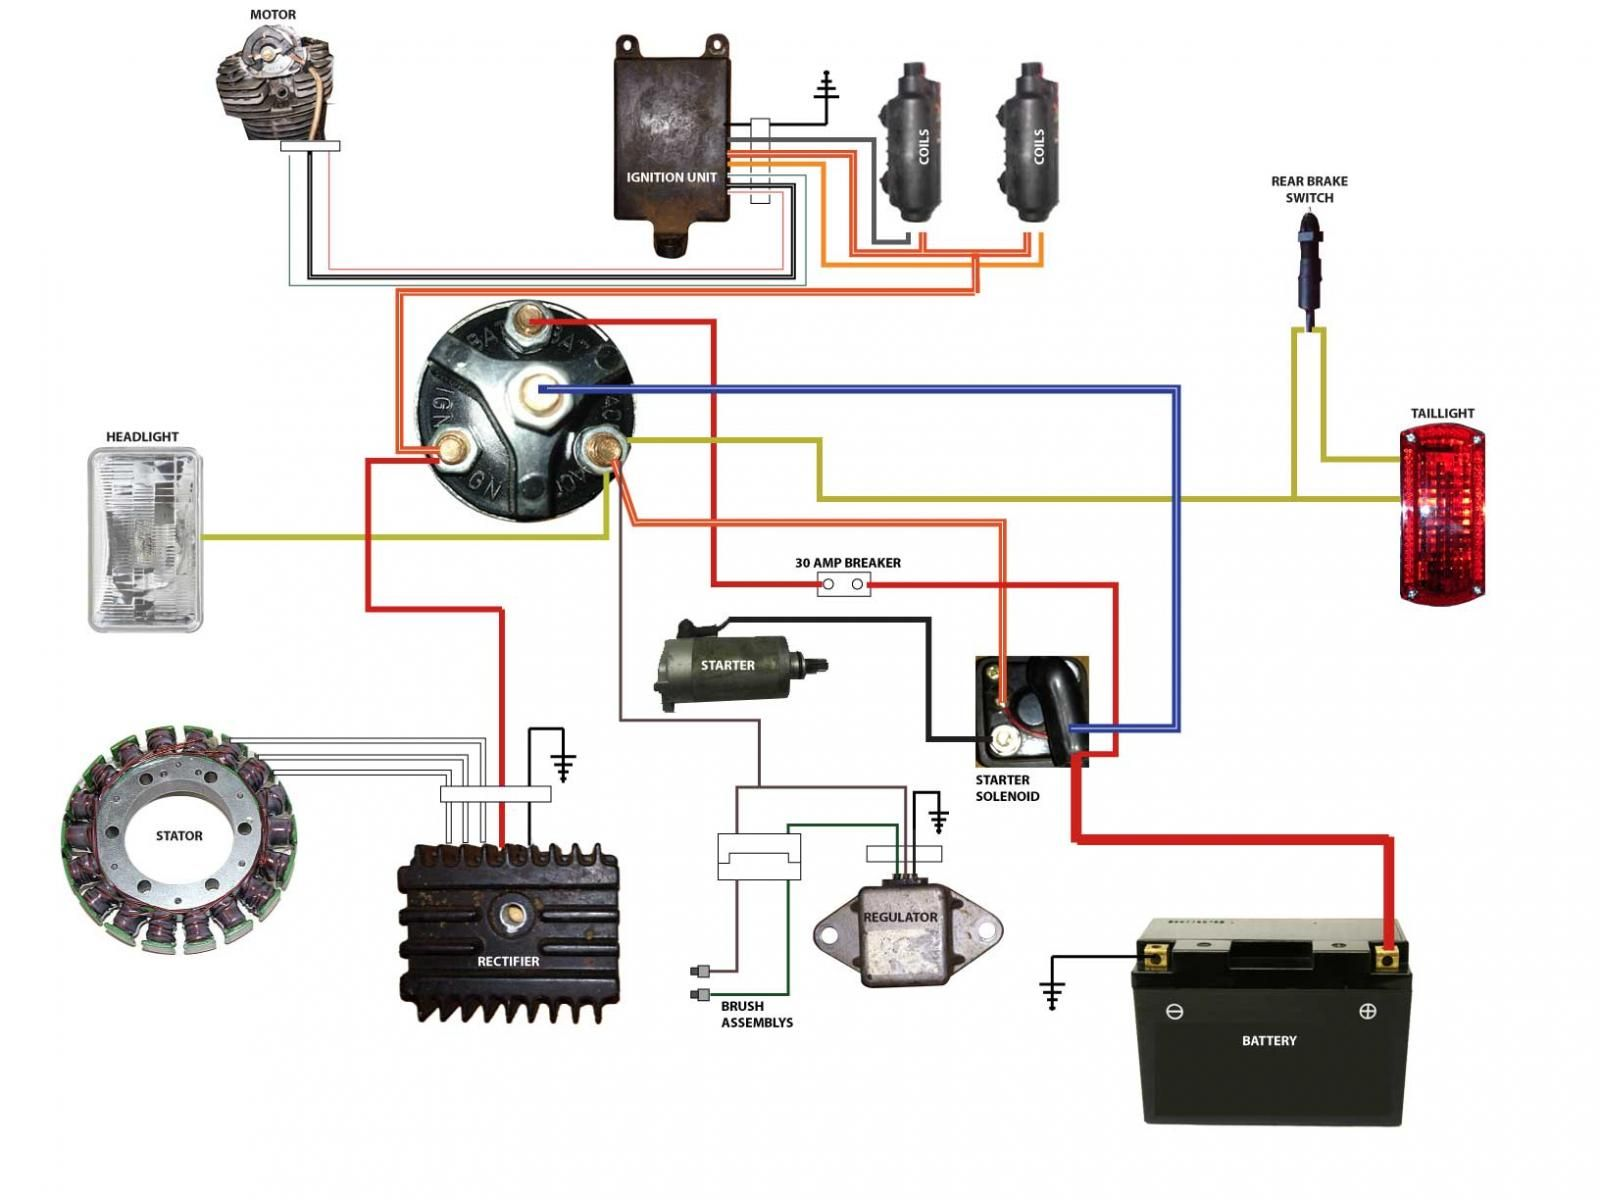 simplified    wiring       diagram    for xs400 cafe      Motorcycle       wiring        Motorcycle    battery  Cafe racer parts